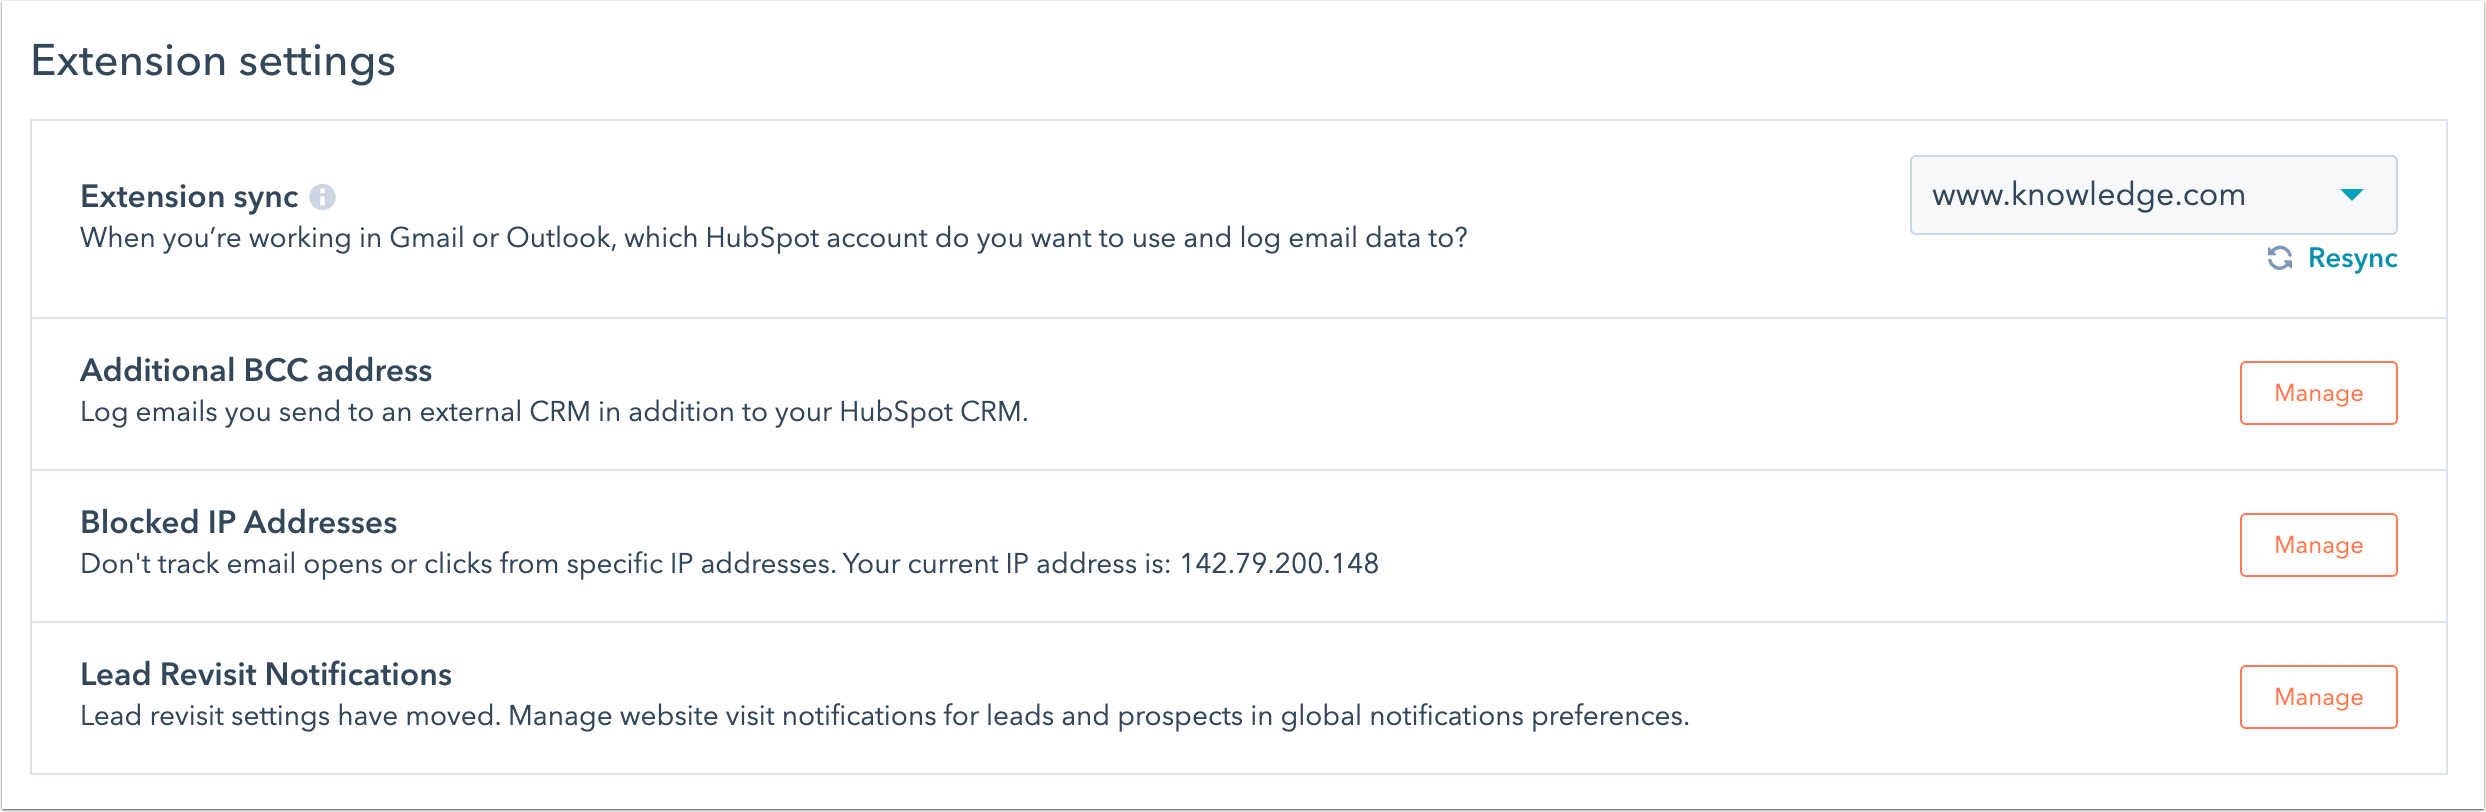 manage-your-hubspot-extension-settings